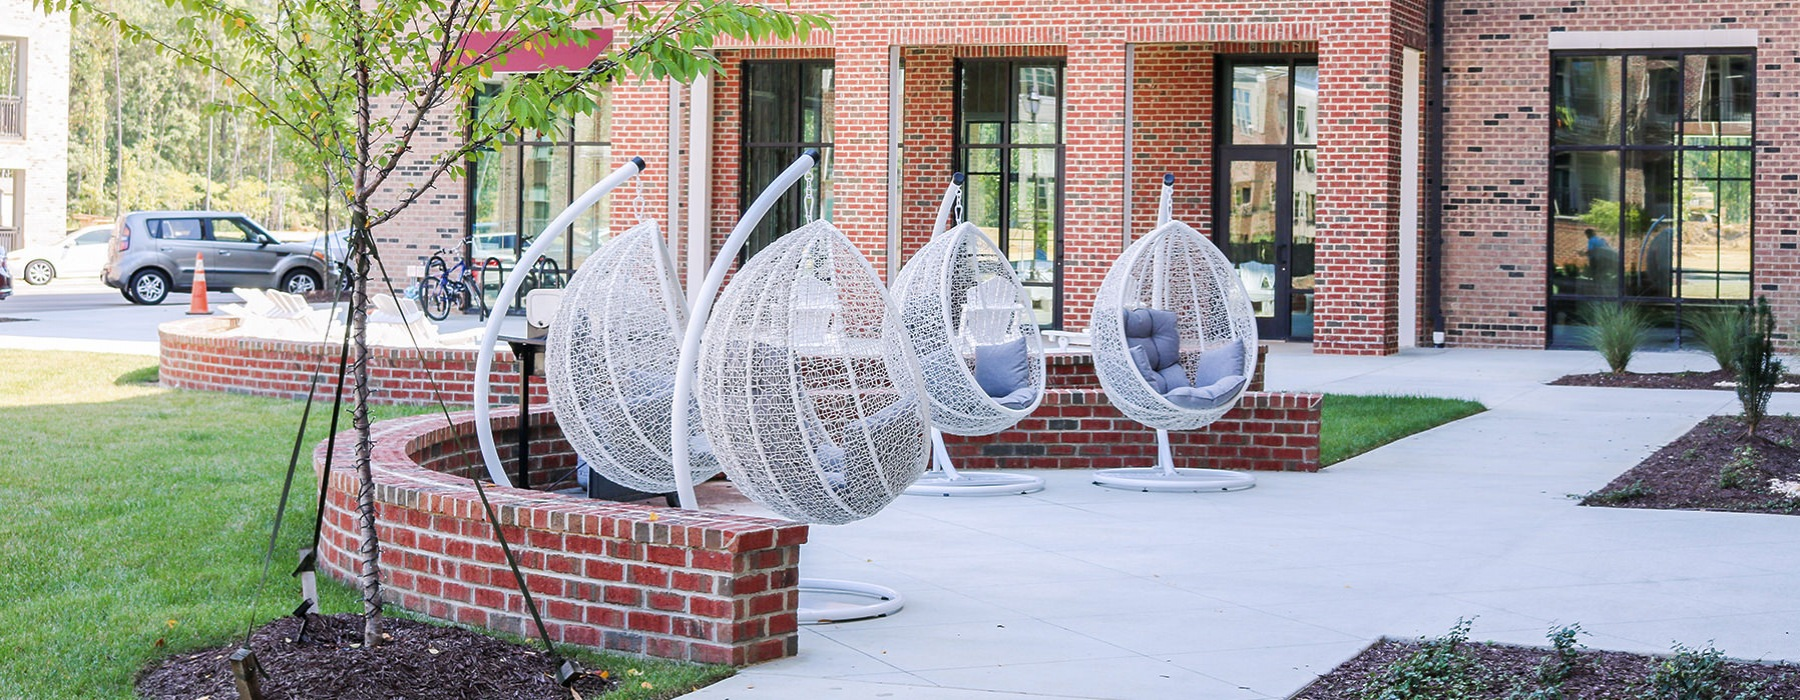 Modern hanging chairs are available in the open courtyard